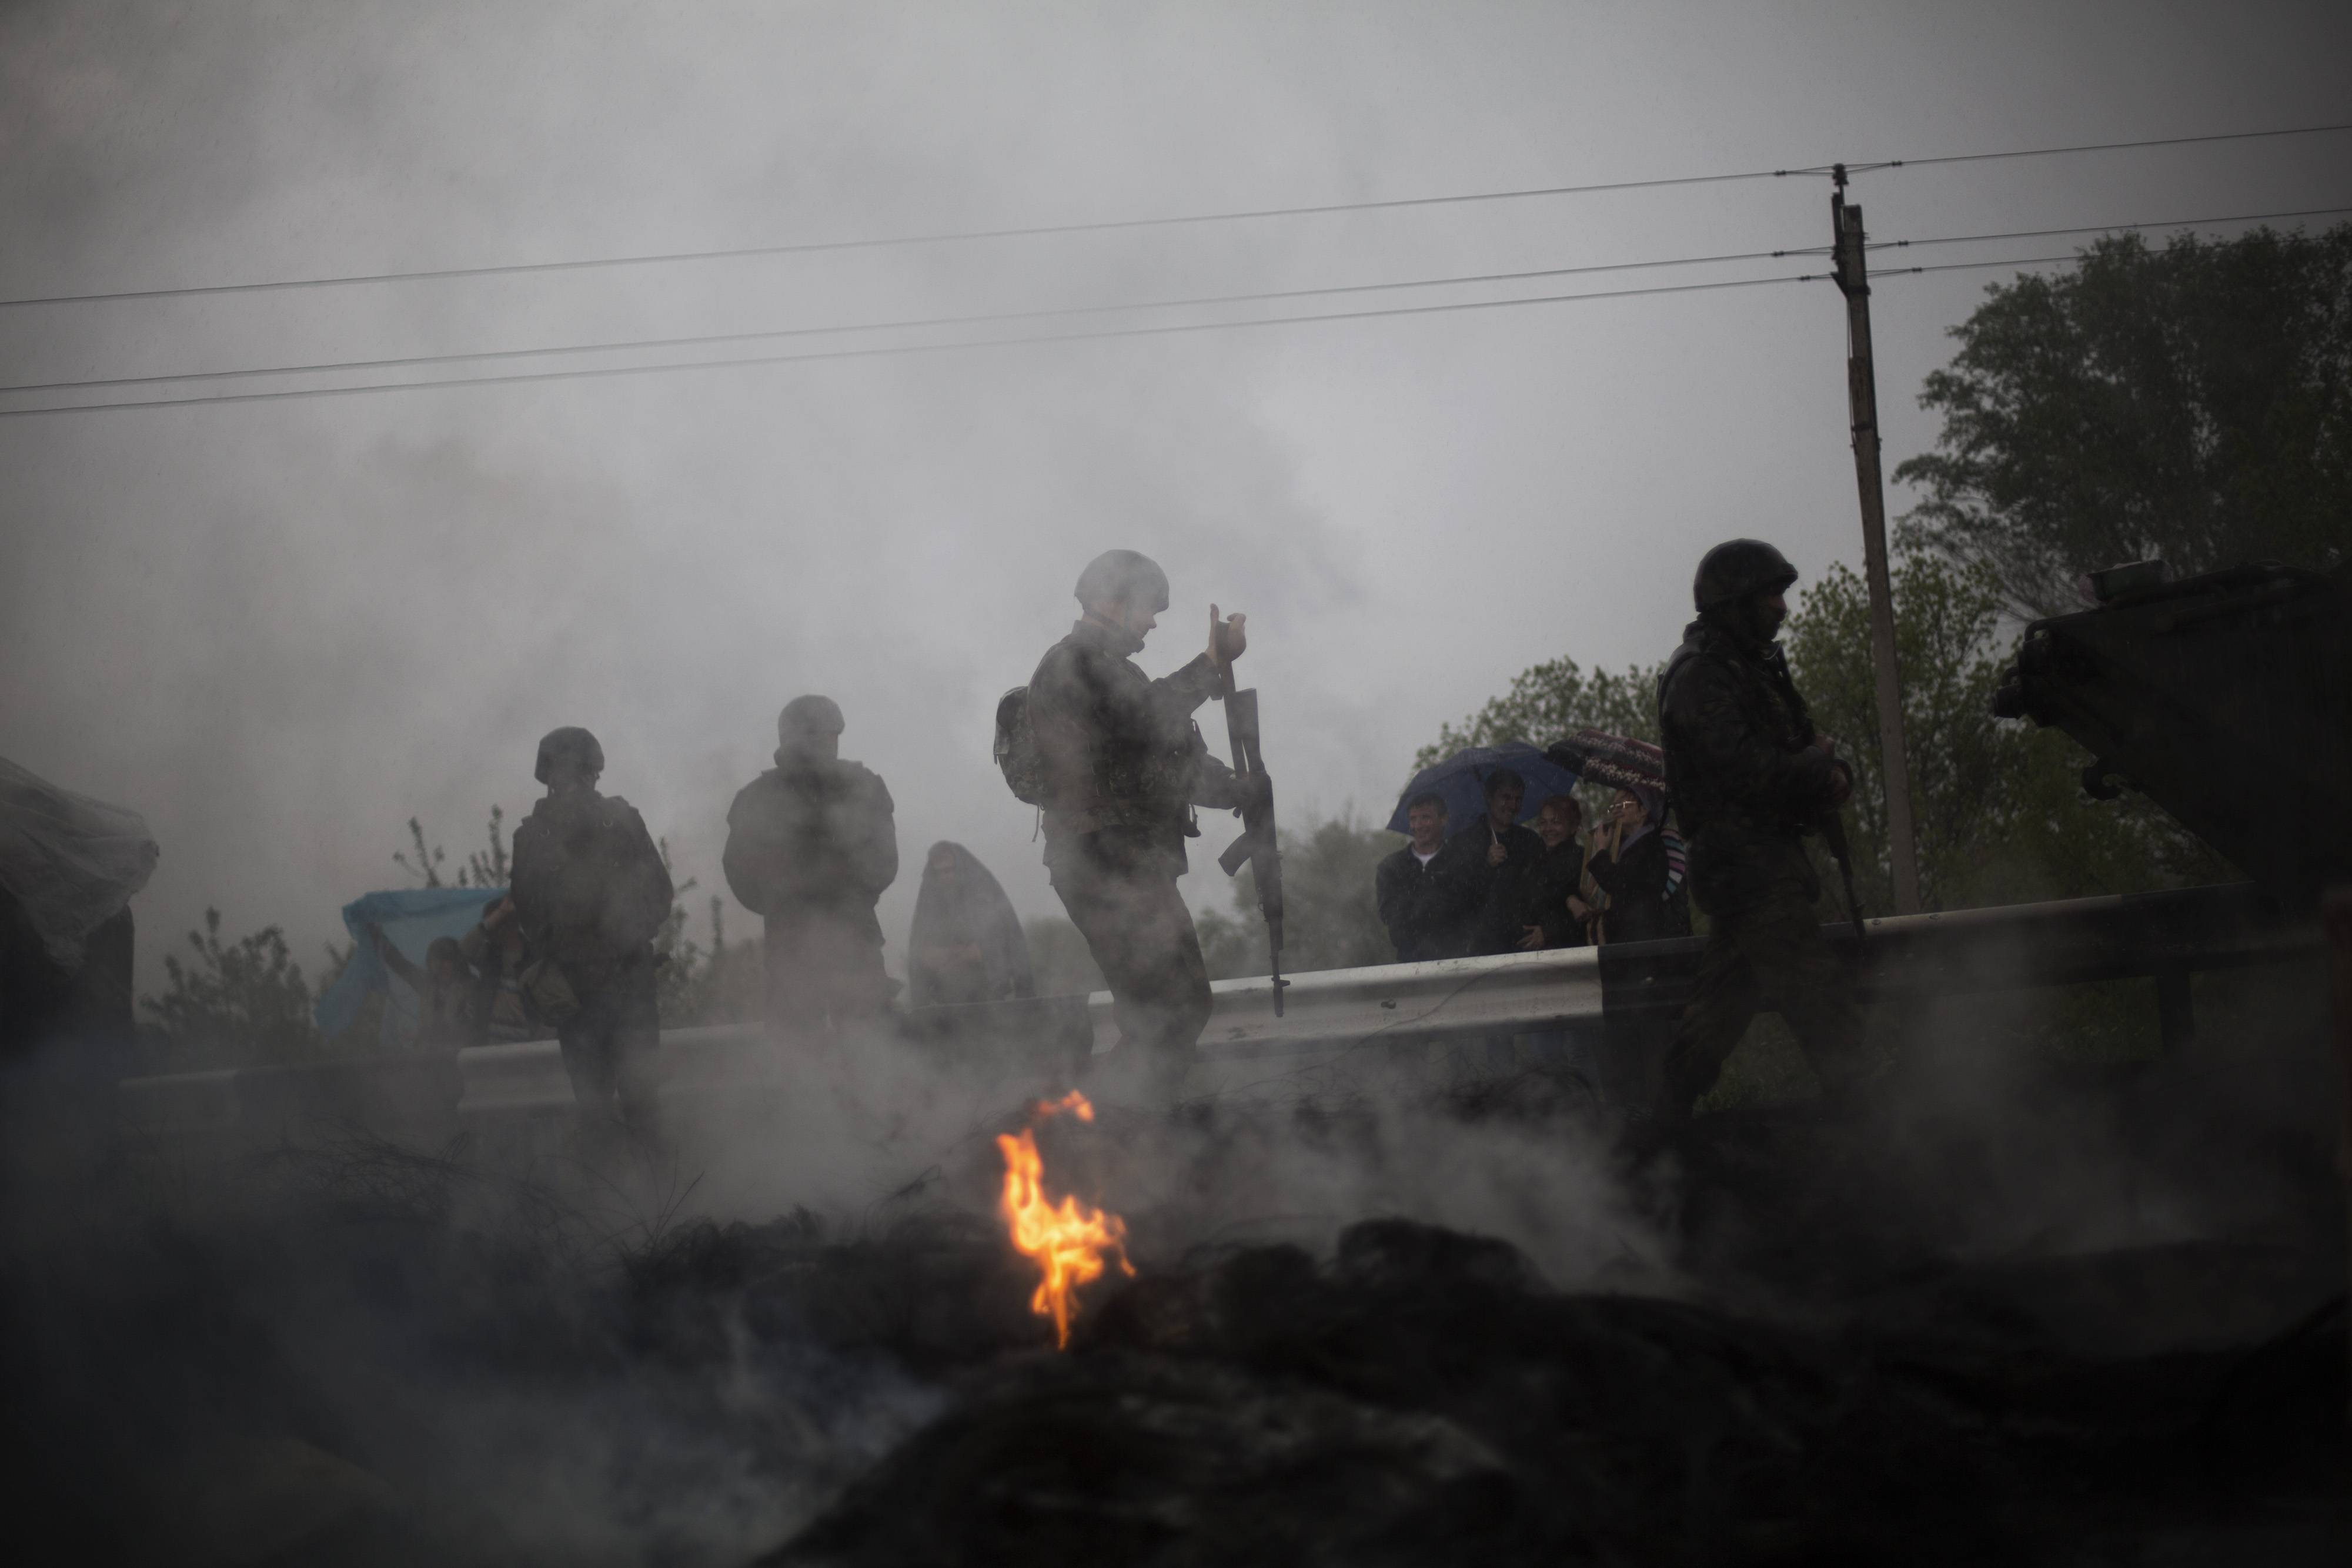 A Ukrainian Army soldier walks behind a burnt barricade Friday while Pro Russia civilians block the road to Slaviansk in the village of Andreevka, Ukraine. Russia has massed tens of thousands of troops in areas near Ukraine's border.